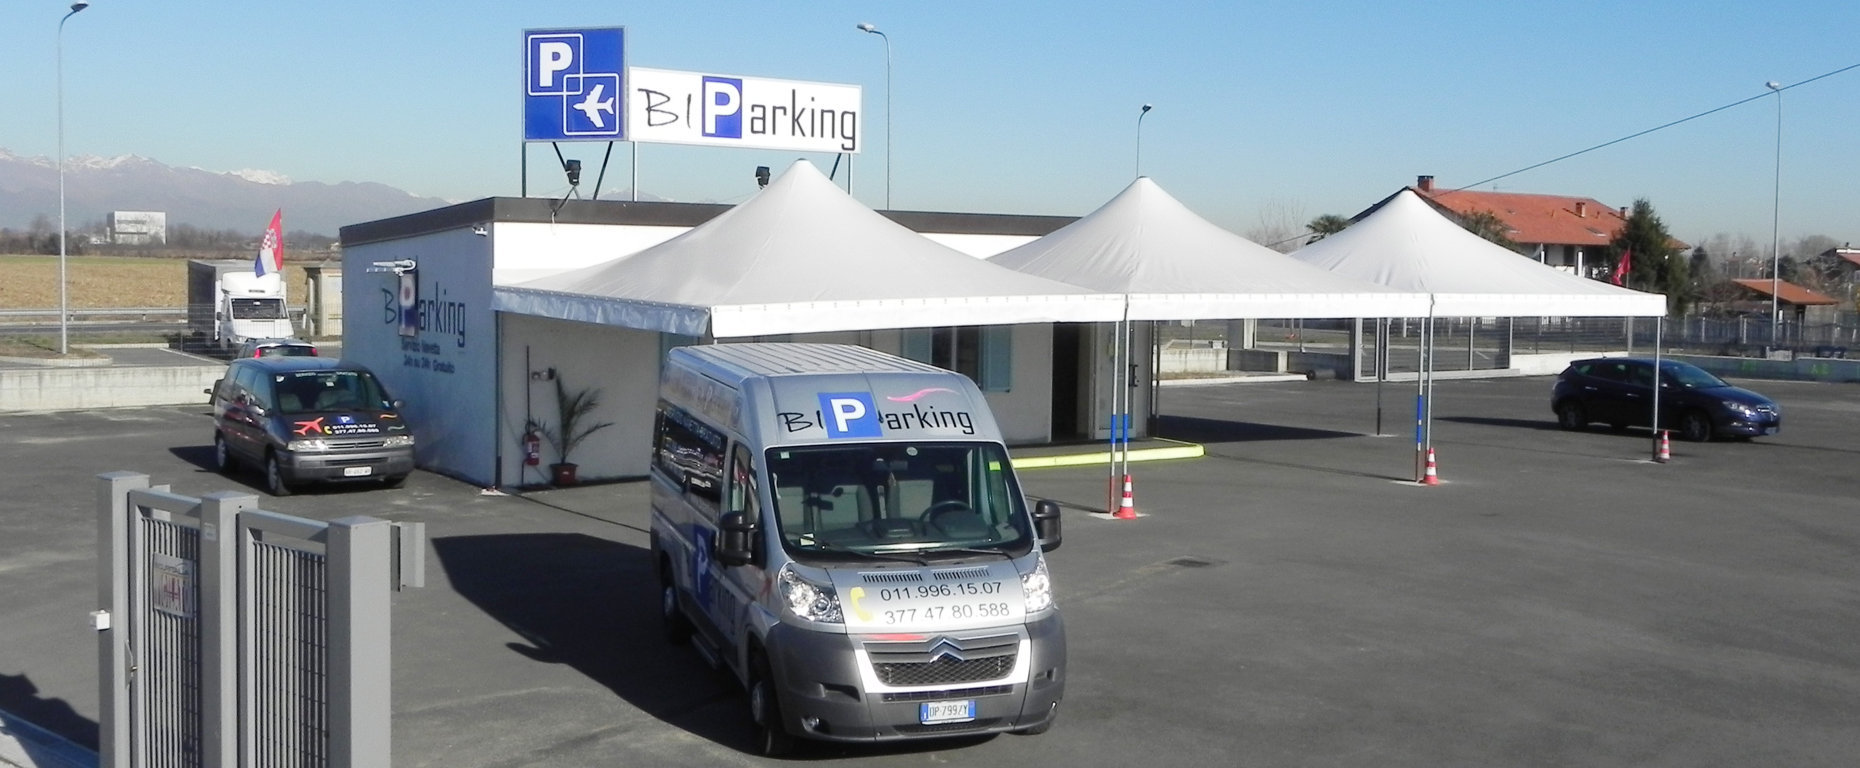 Parking-Caselle-Torino